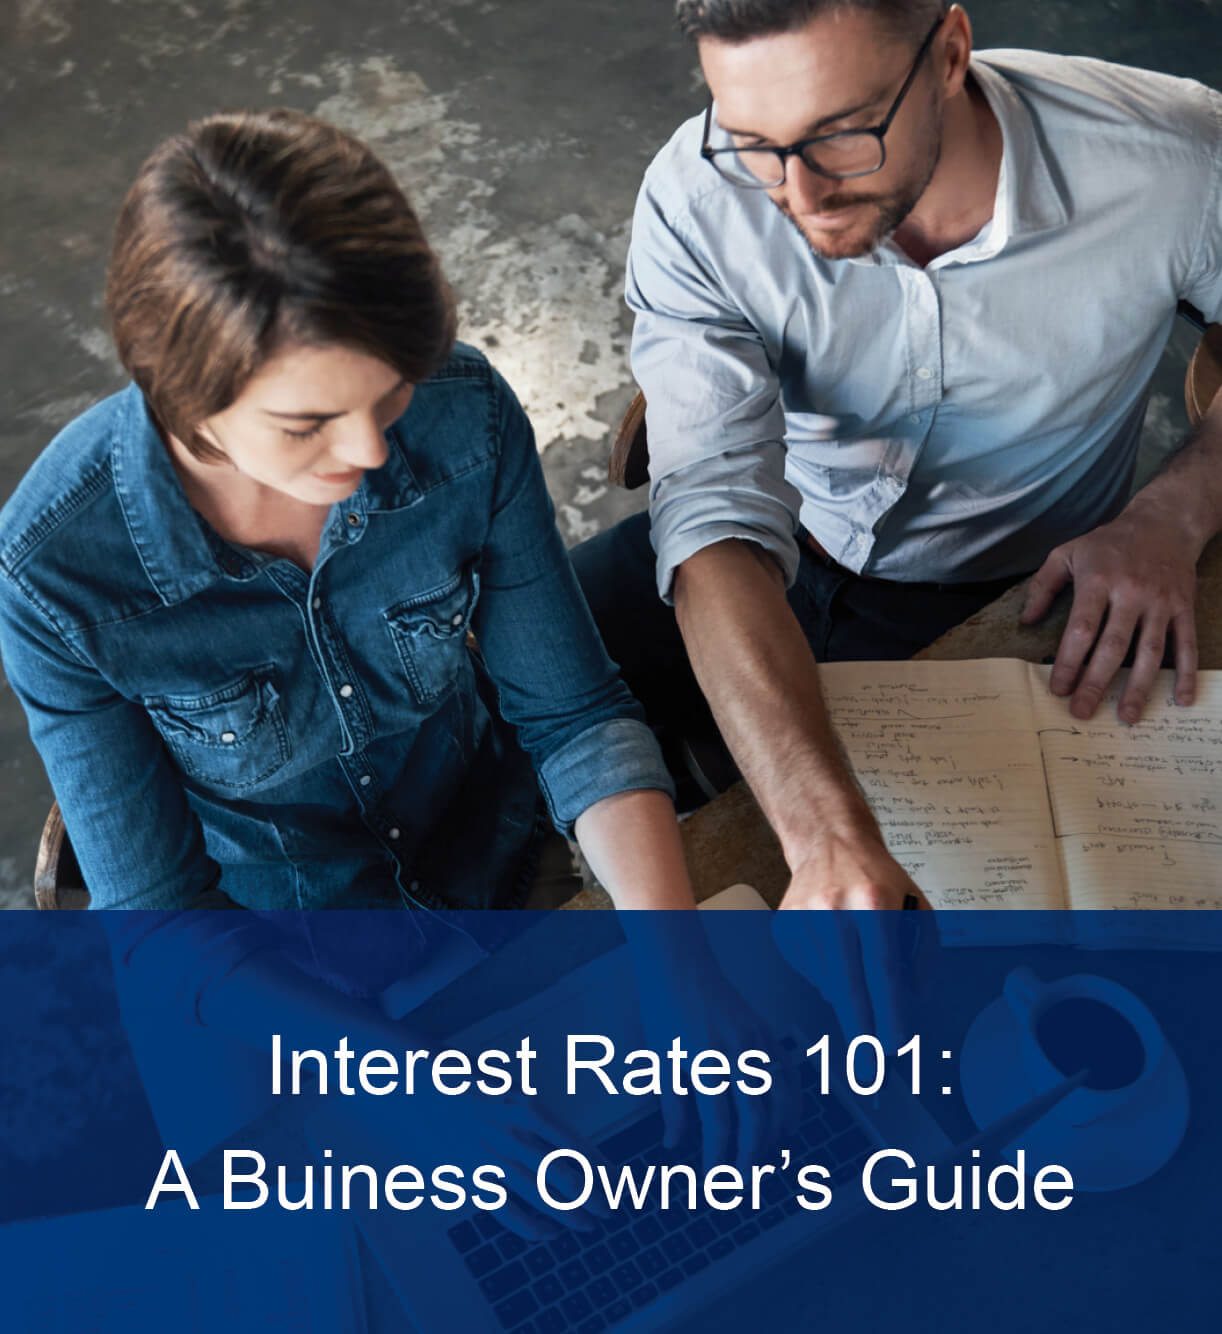 Interest Rates 101: A Business Owner's Guide